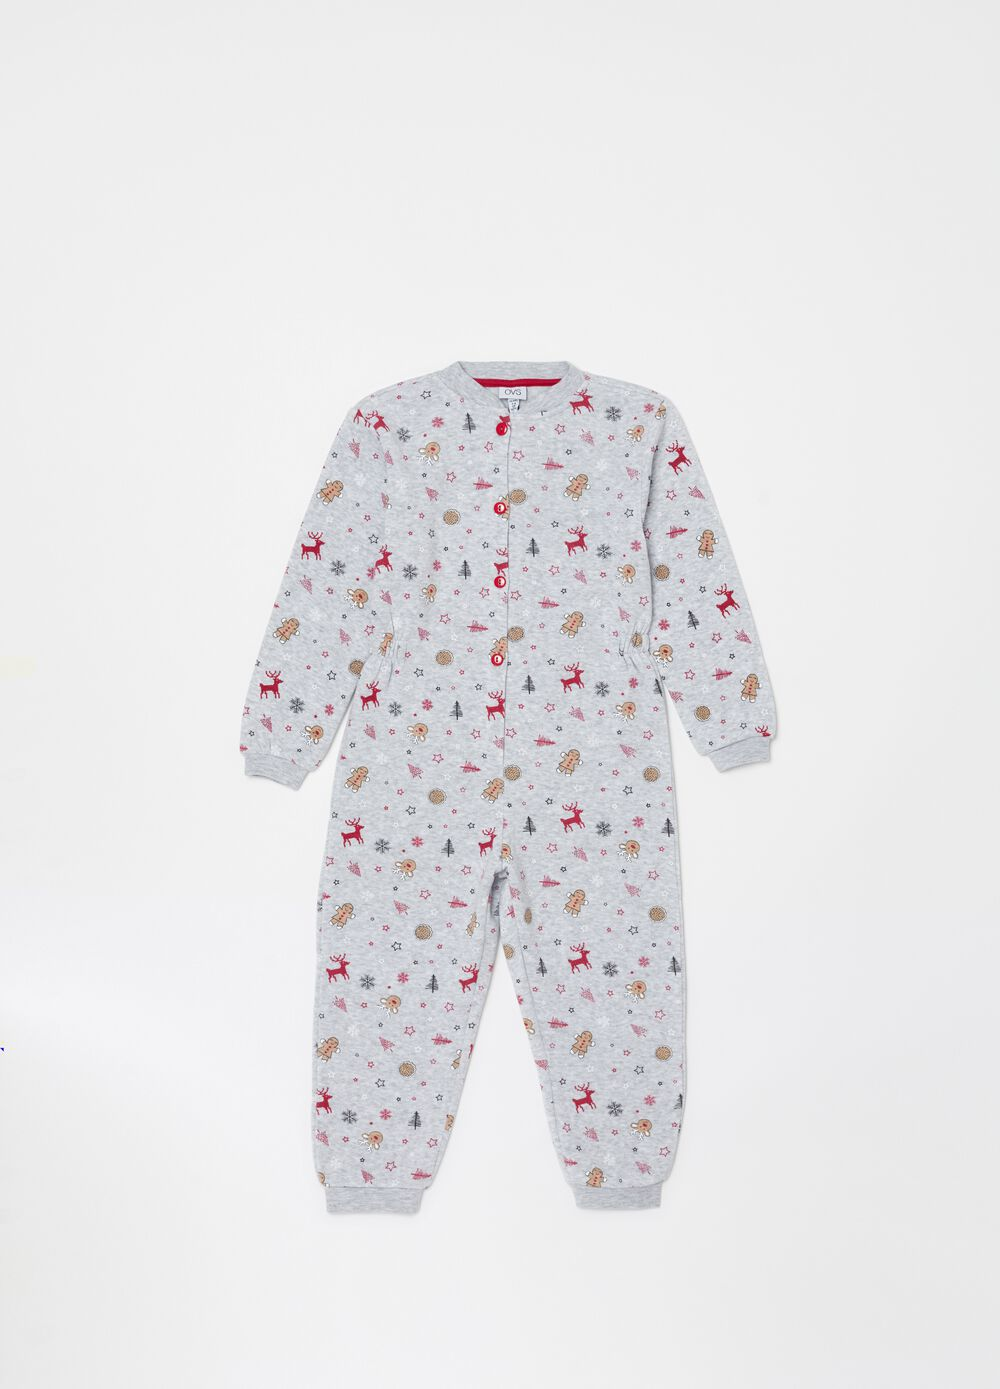 Sleepsuit with Christmas pattern